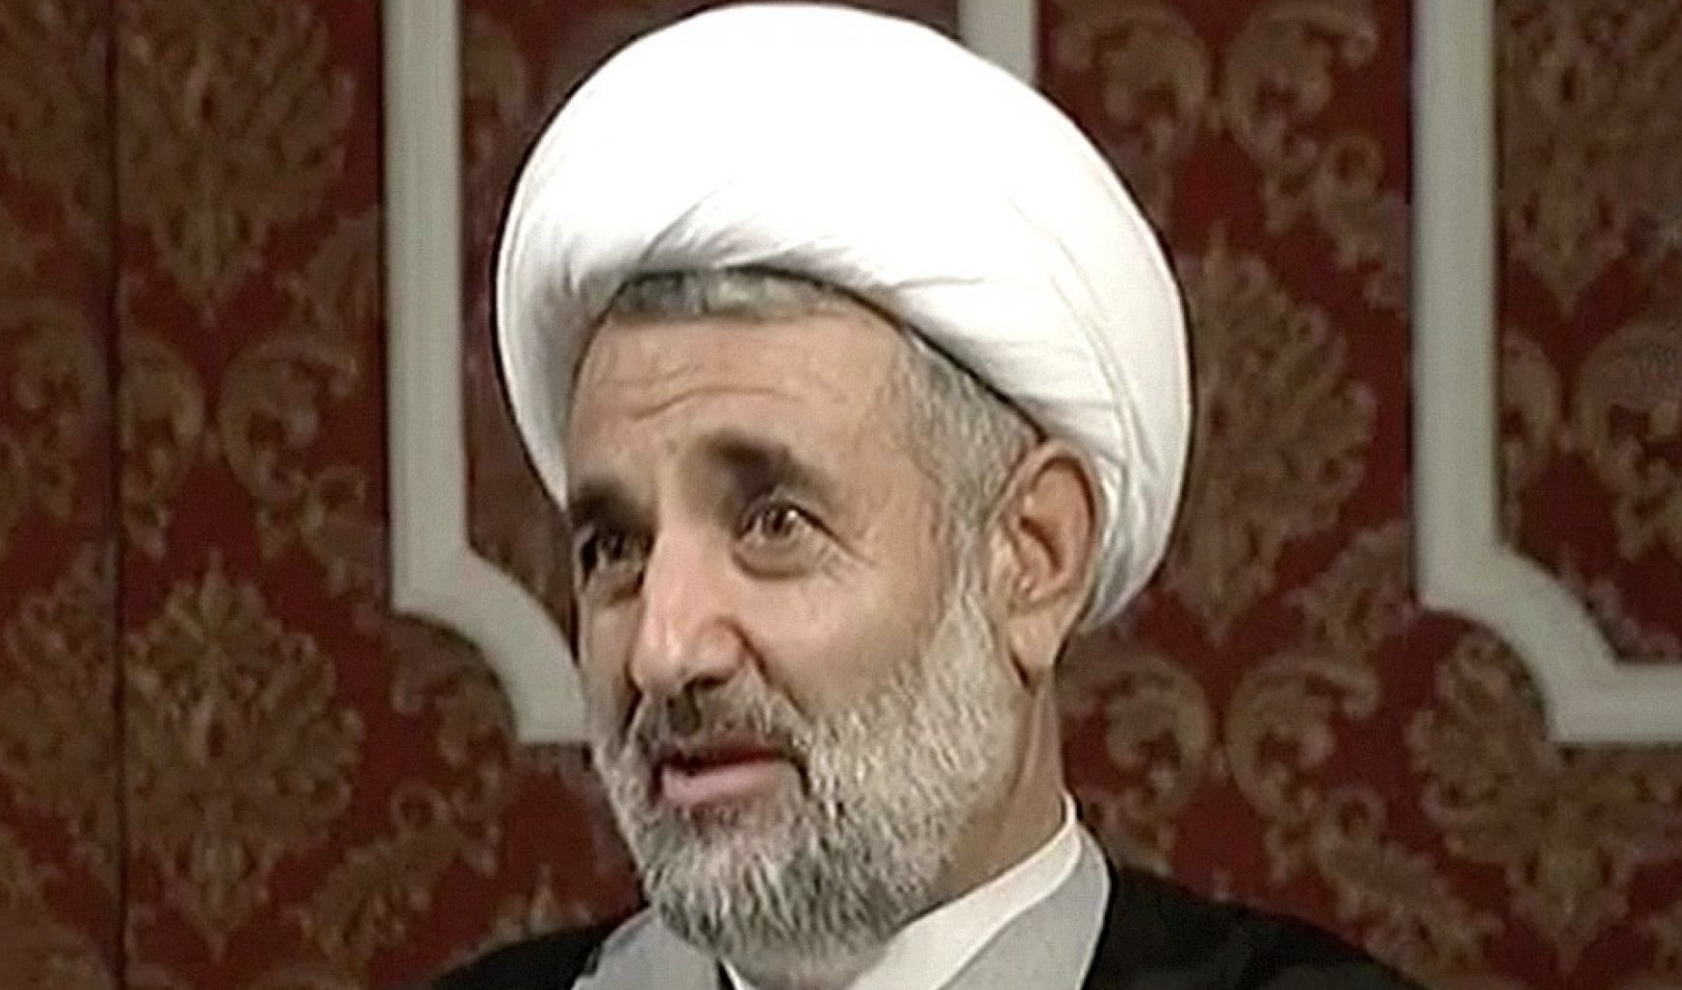 Did Obama Grant Citizenship To Thousands Of Iranians? This Iran Official Says Yes, He Did